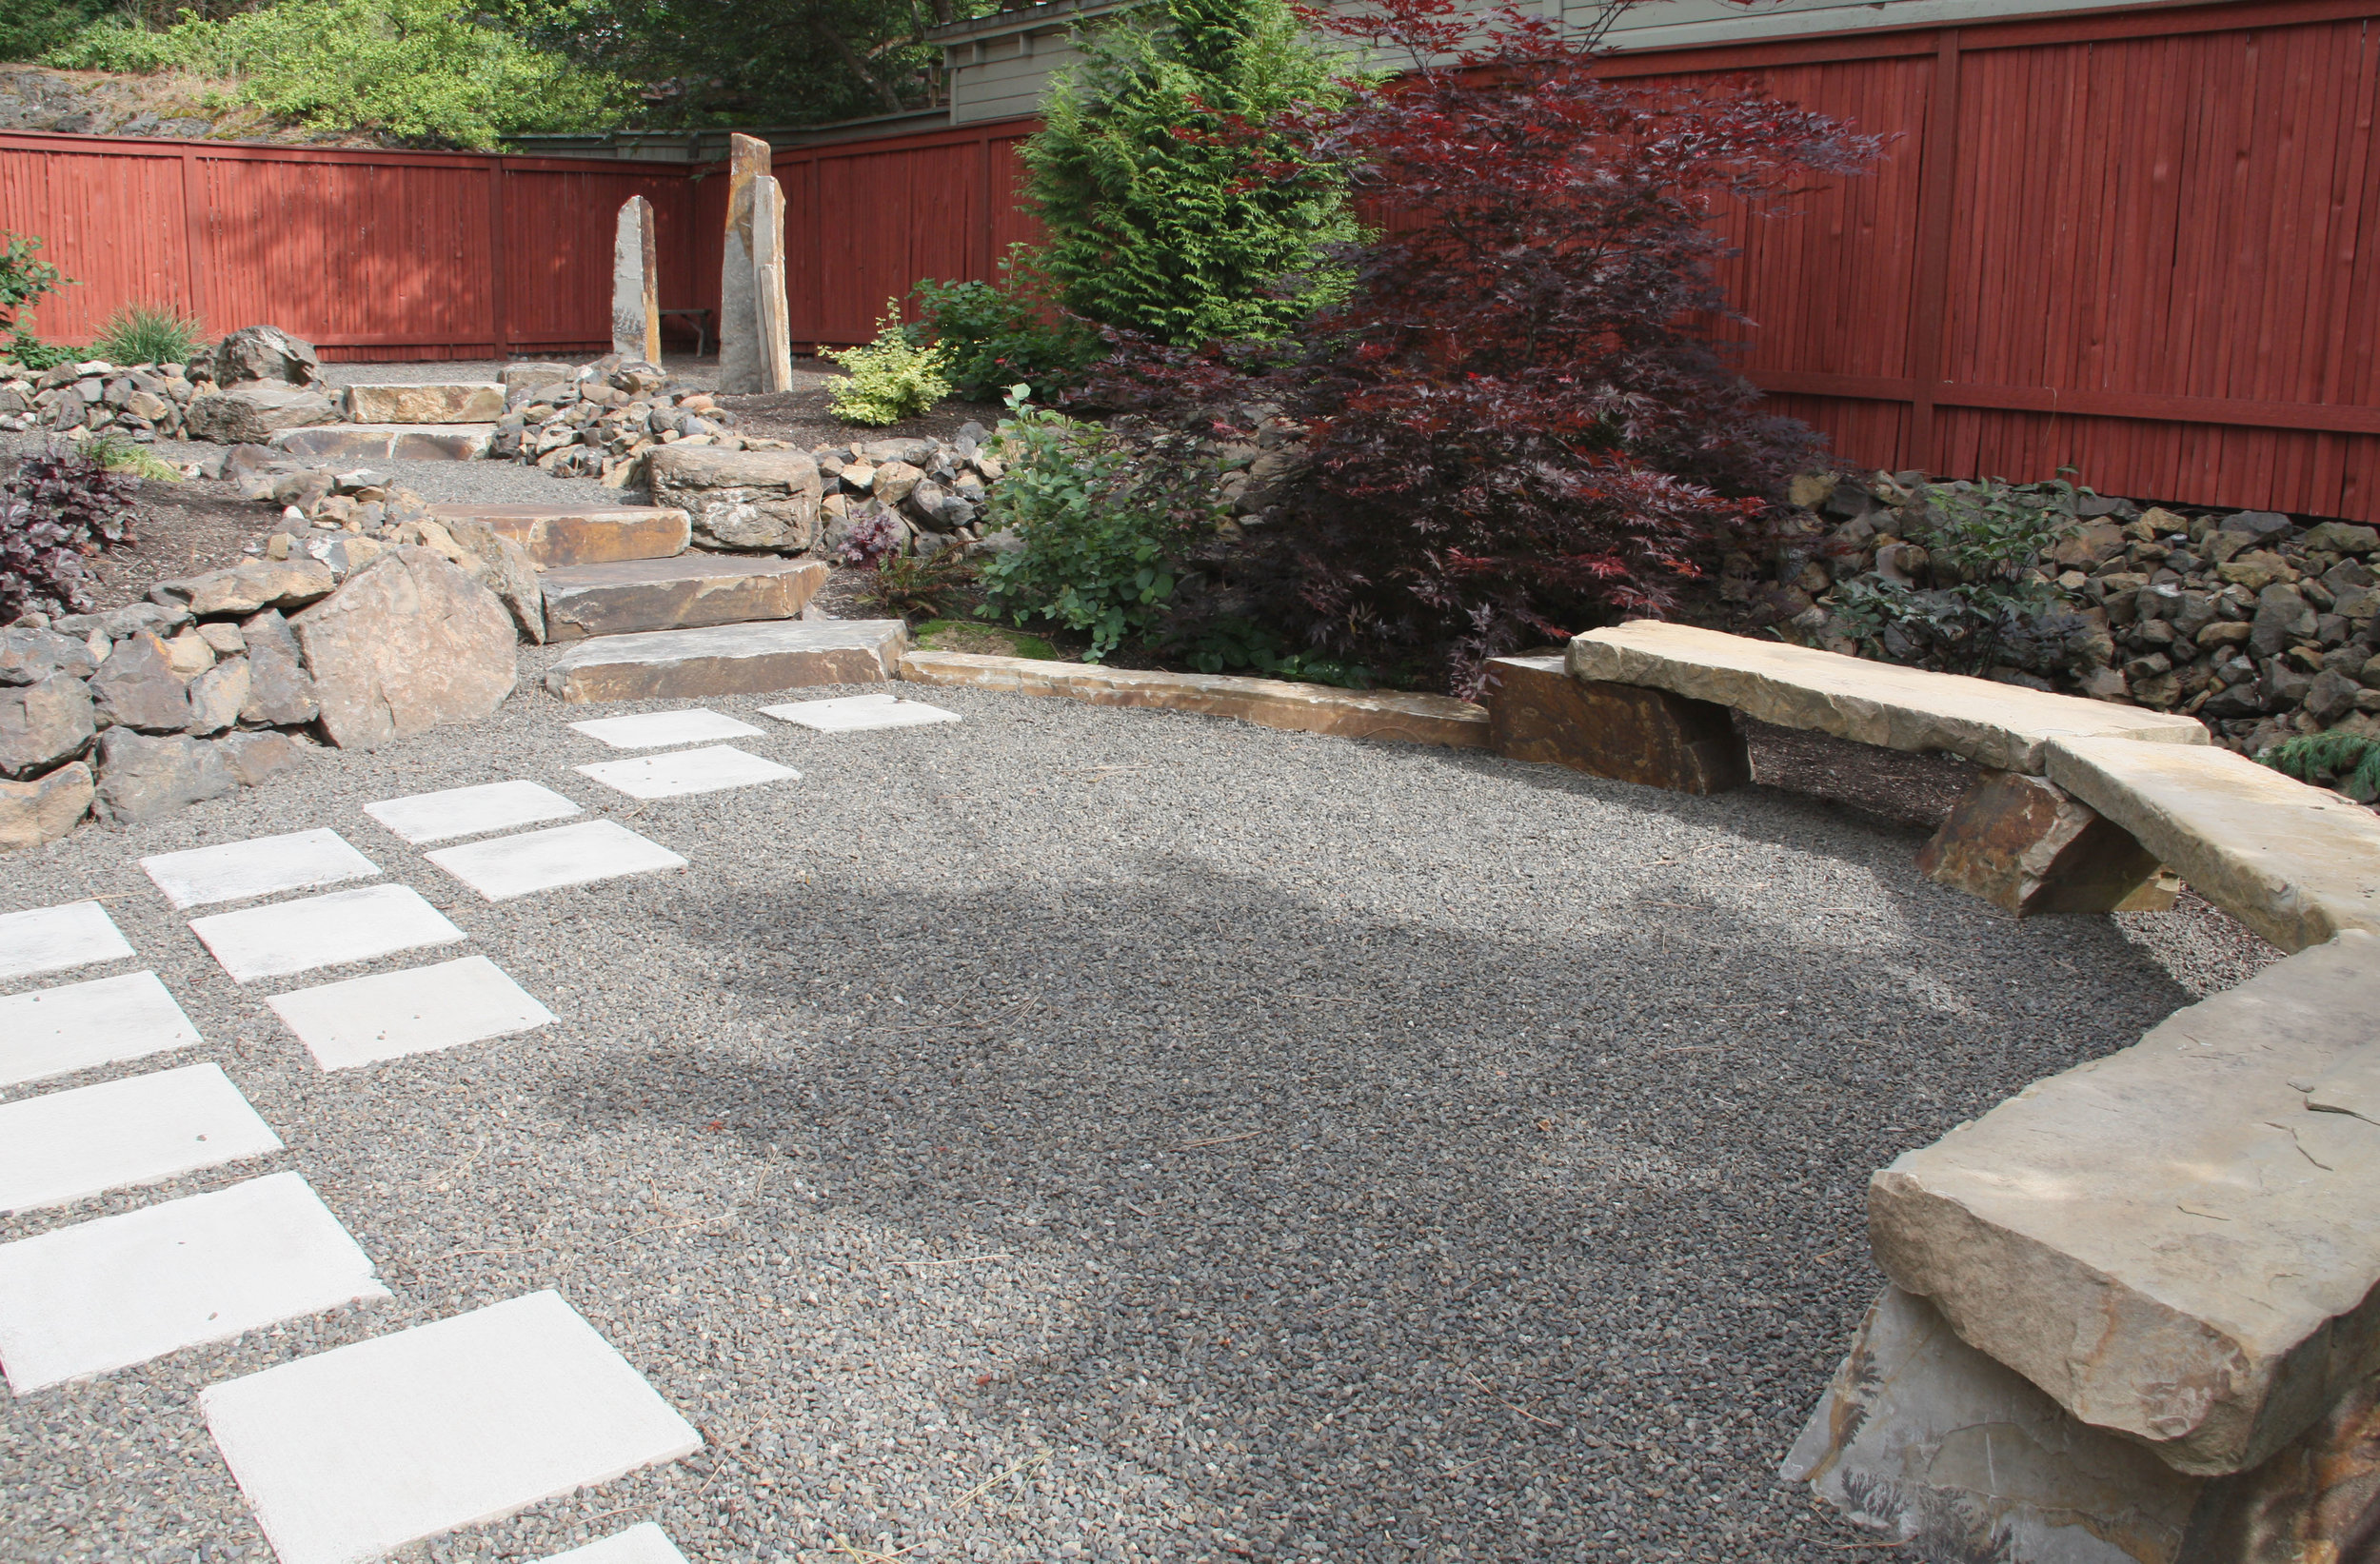 Concrete pavers set into this gravel patio create a more robust walking path.